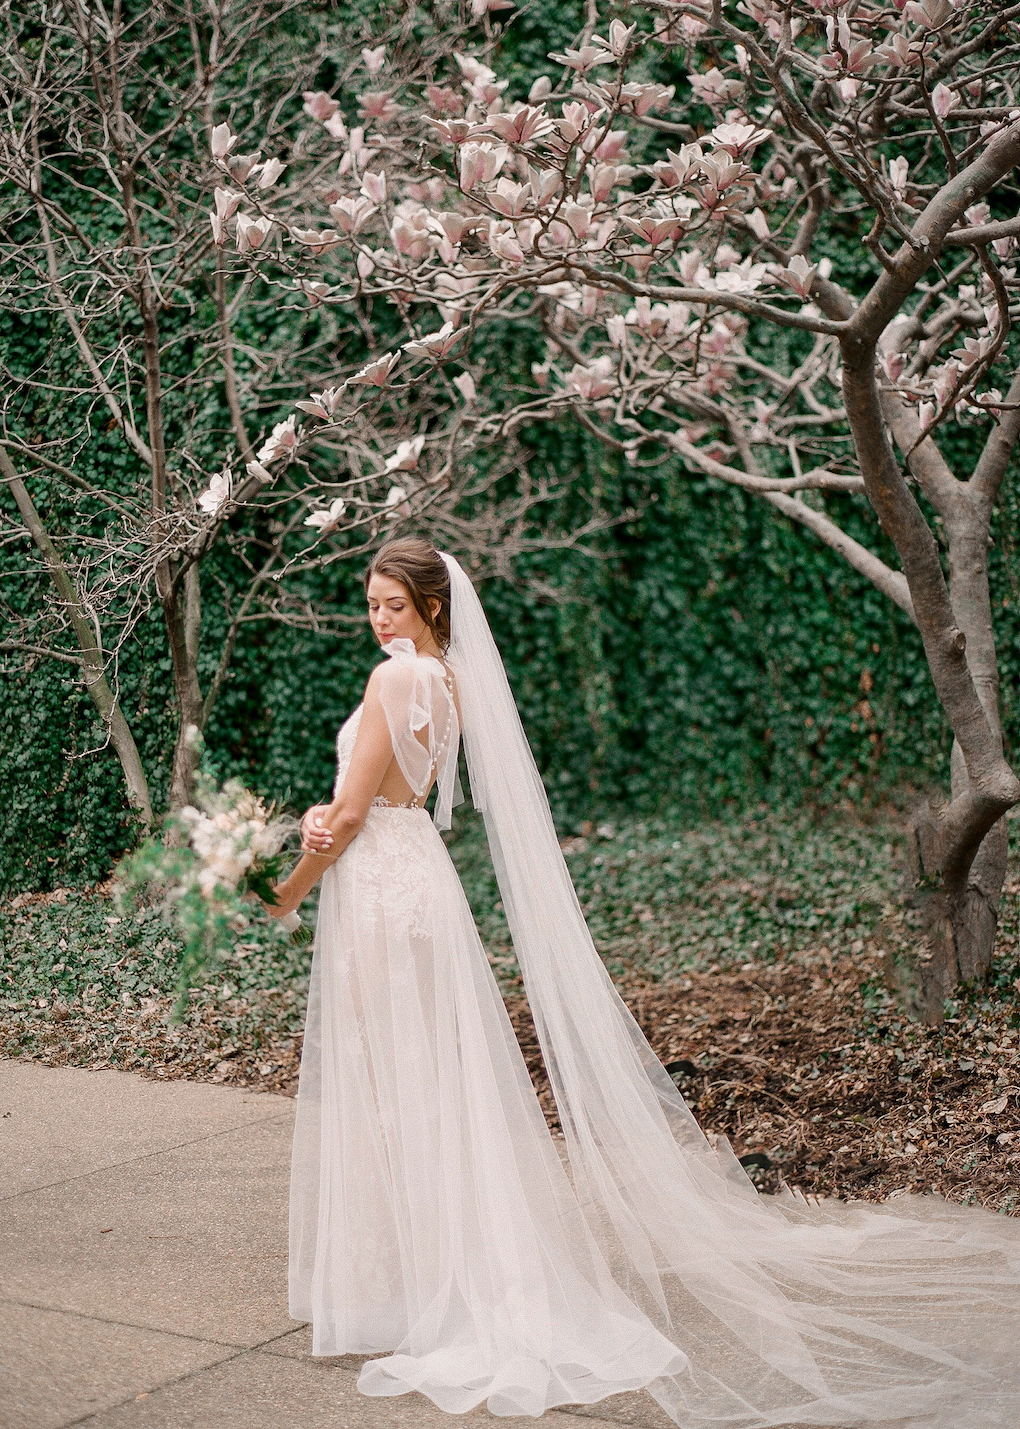 Outdoor wedding photos in downtown Pittsburgh;Soft and Subtle Palettes of Spring Blossoms | Editorial Shoot at The Renaissance Pittsburgh by Exhale Events. See more inspiration at exhale-events.com!